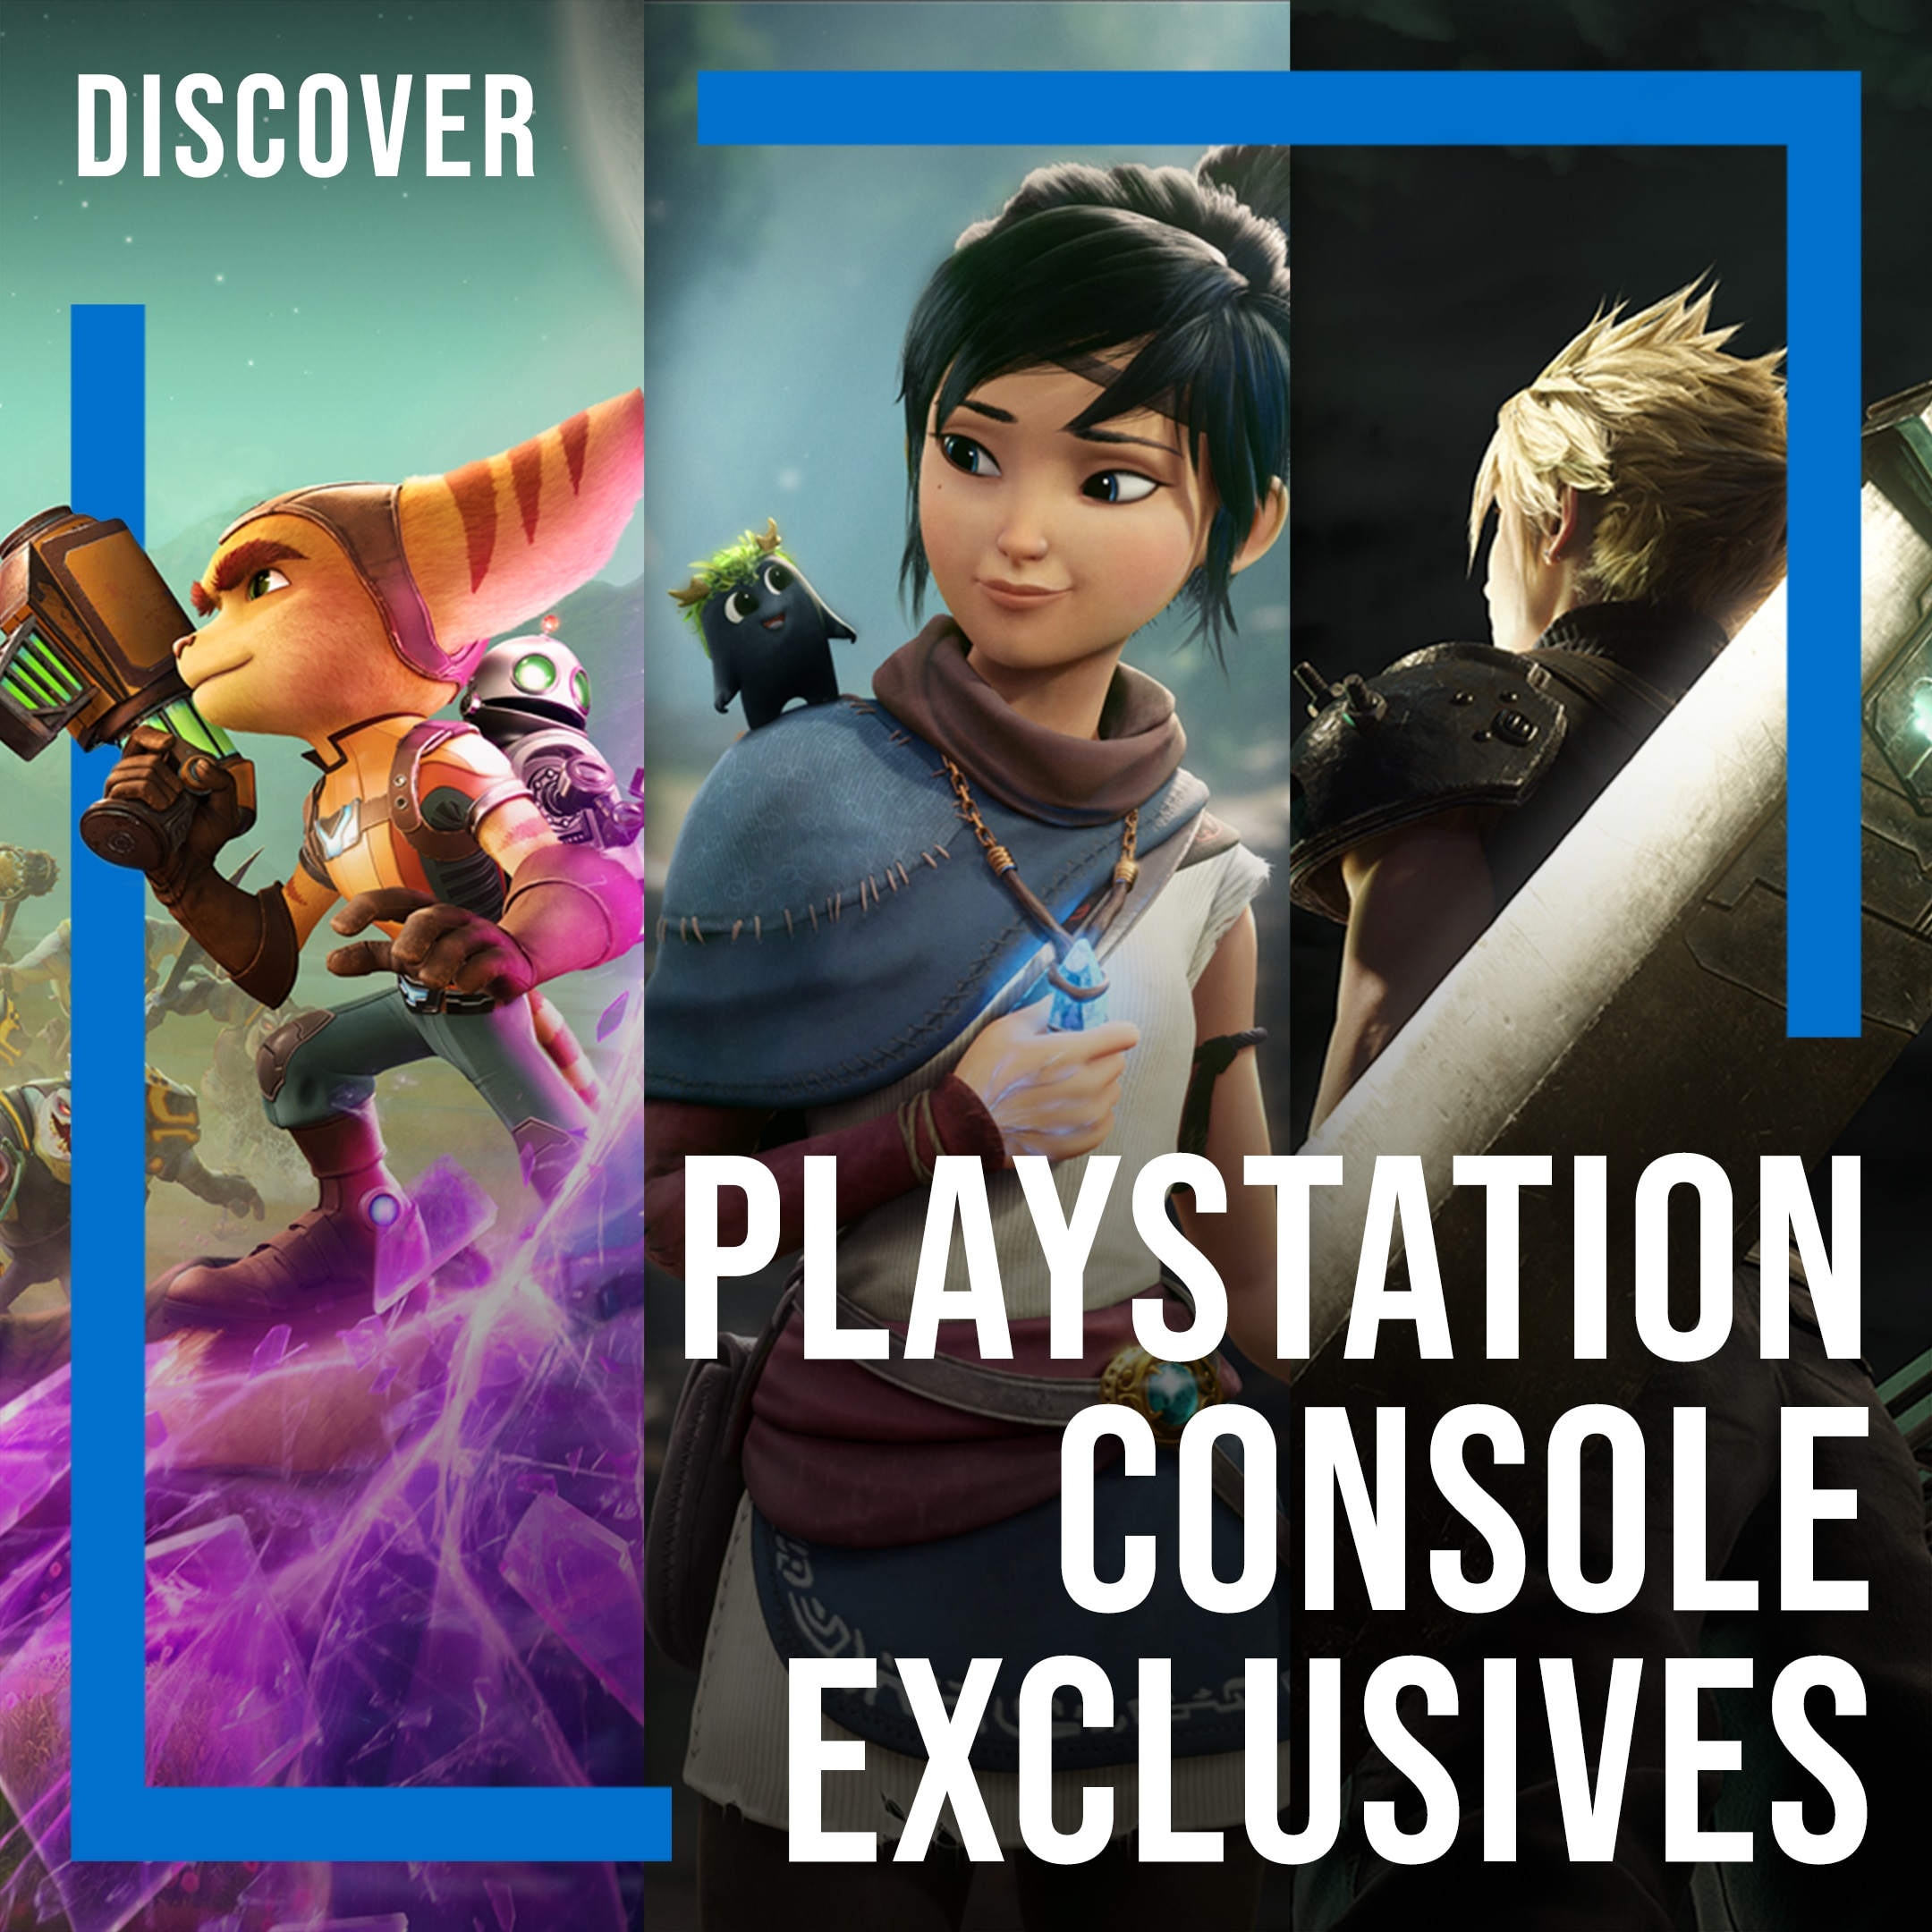 [EDITORIAL] PS Console Exclusives May 2021 Range S26